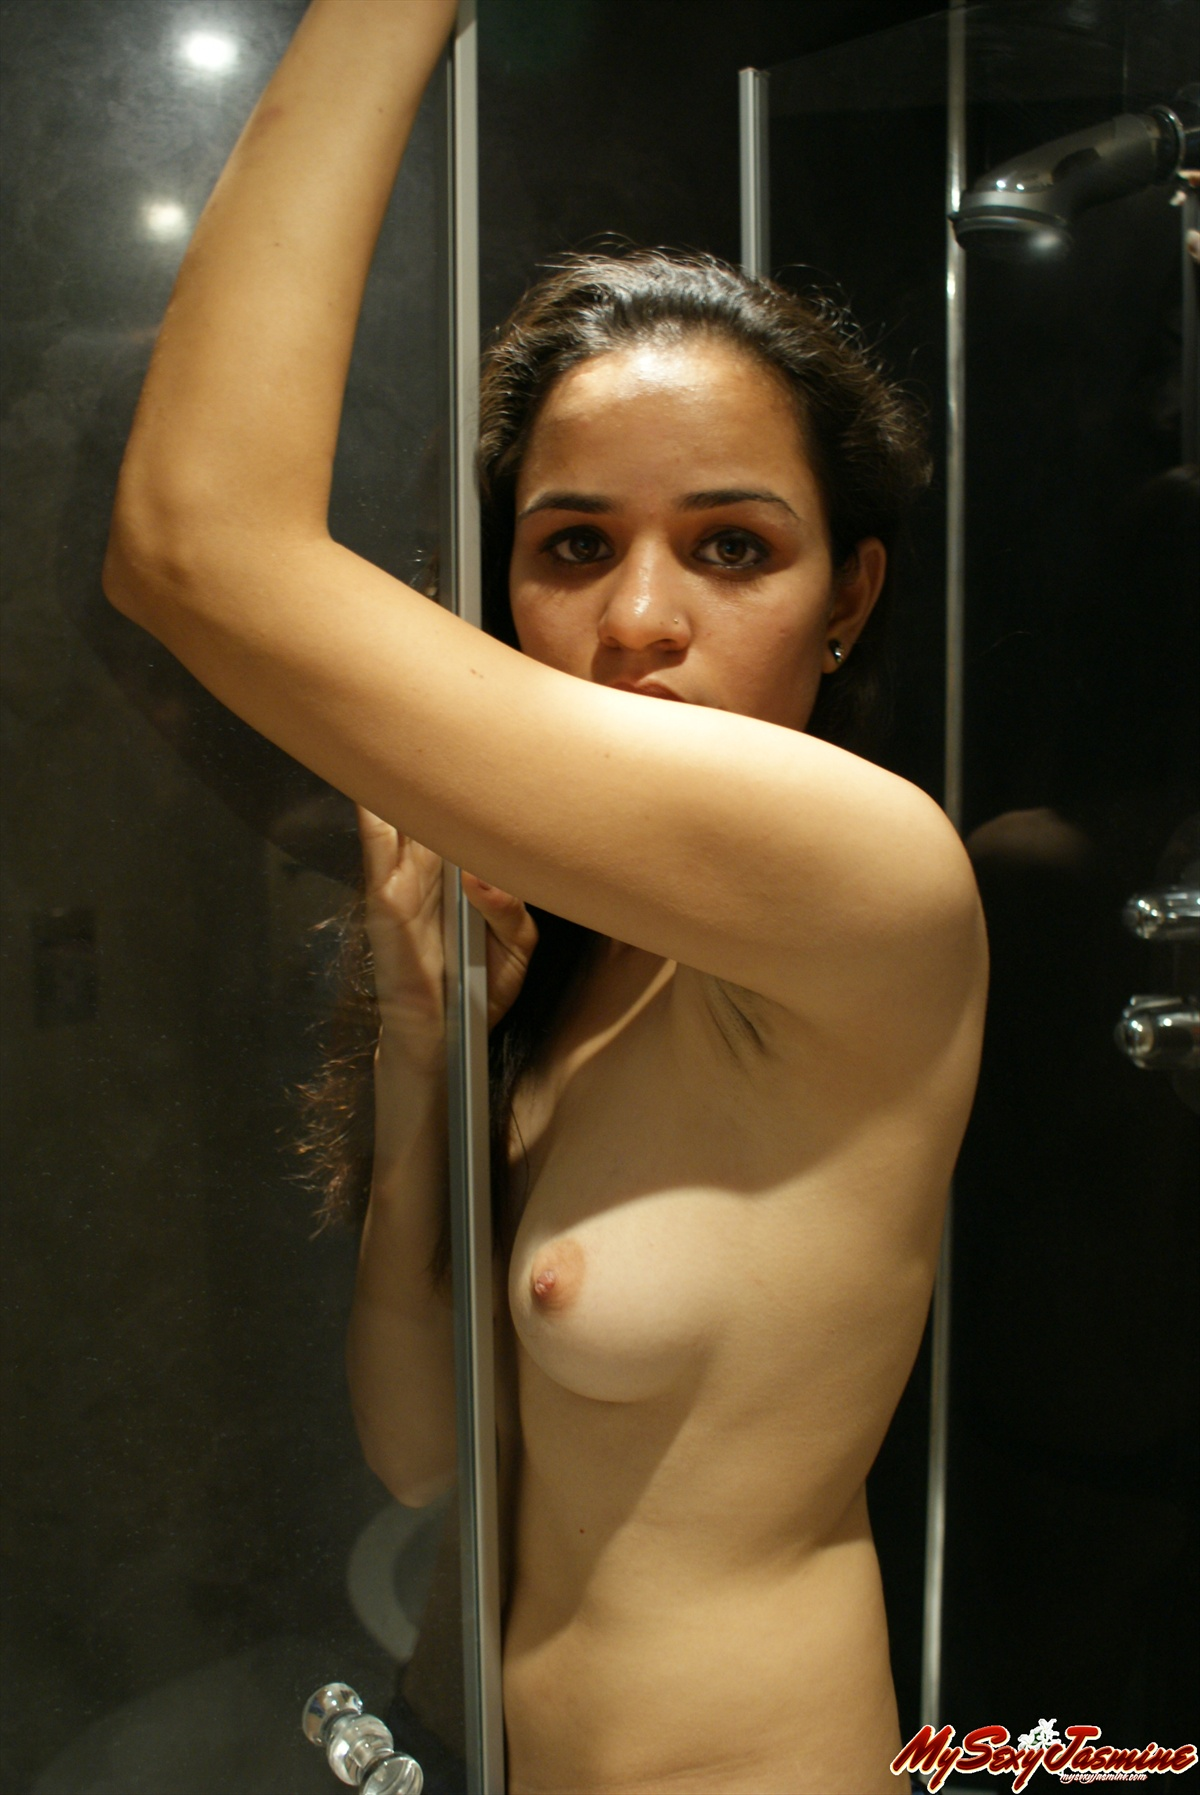 Pic gal 0011. Jasmine in shower rubbing herself with pipe